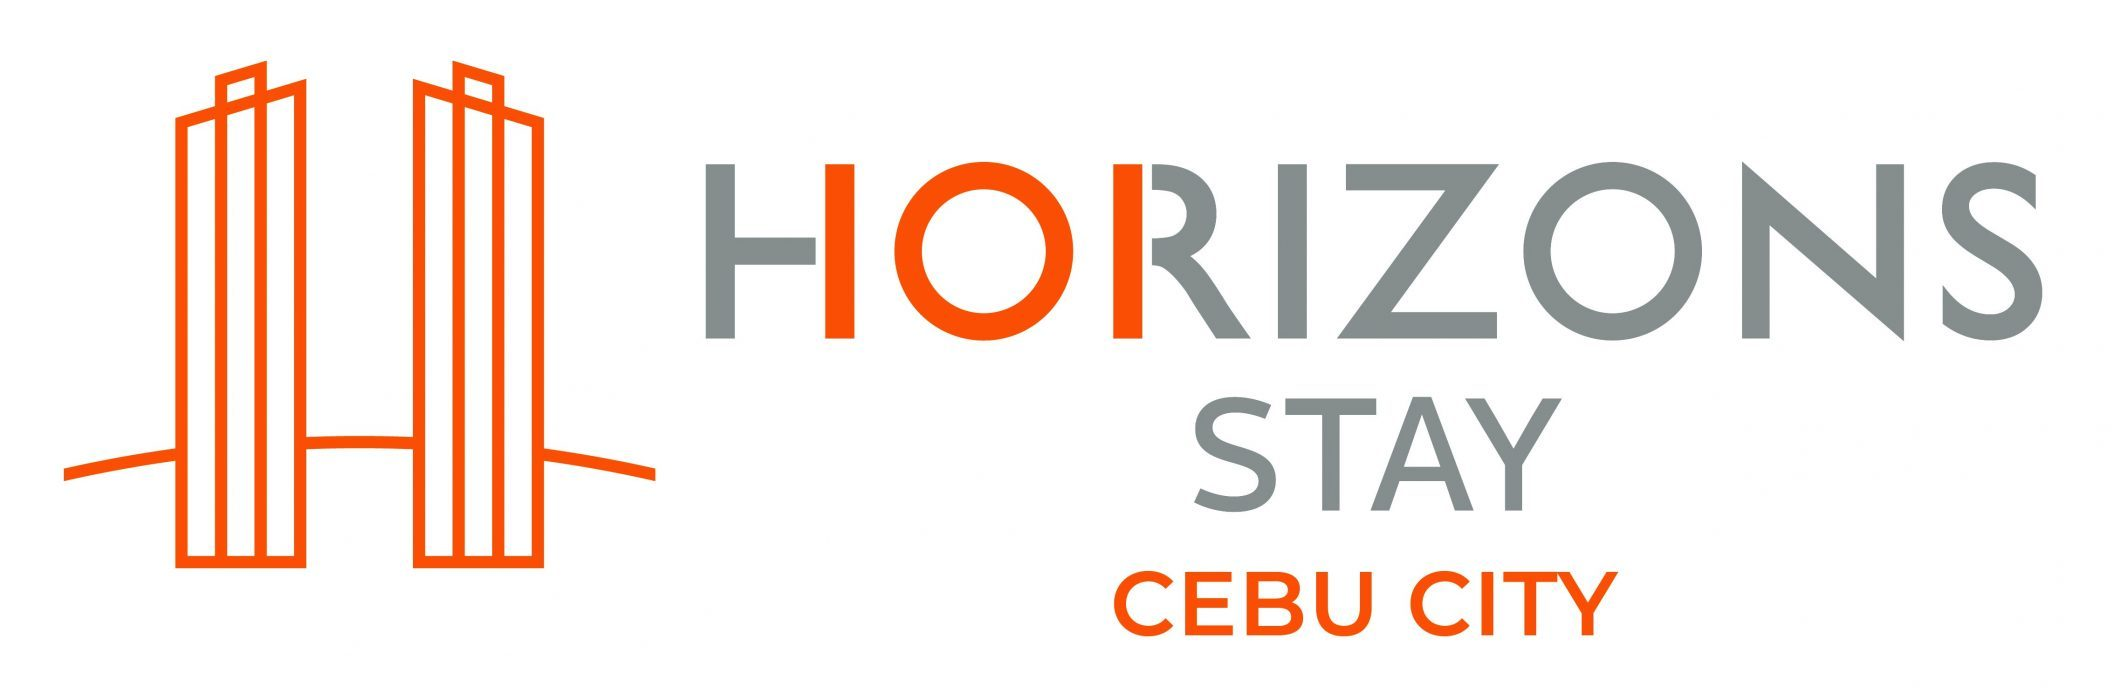 Horizons Stay Cebu